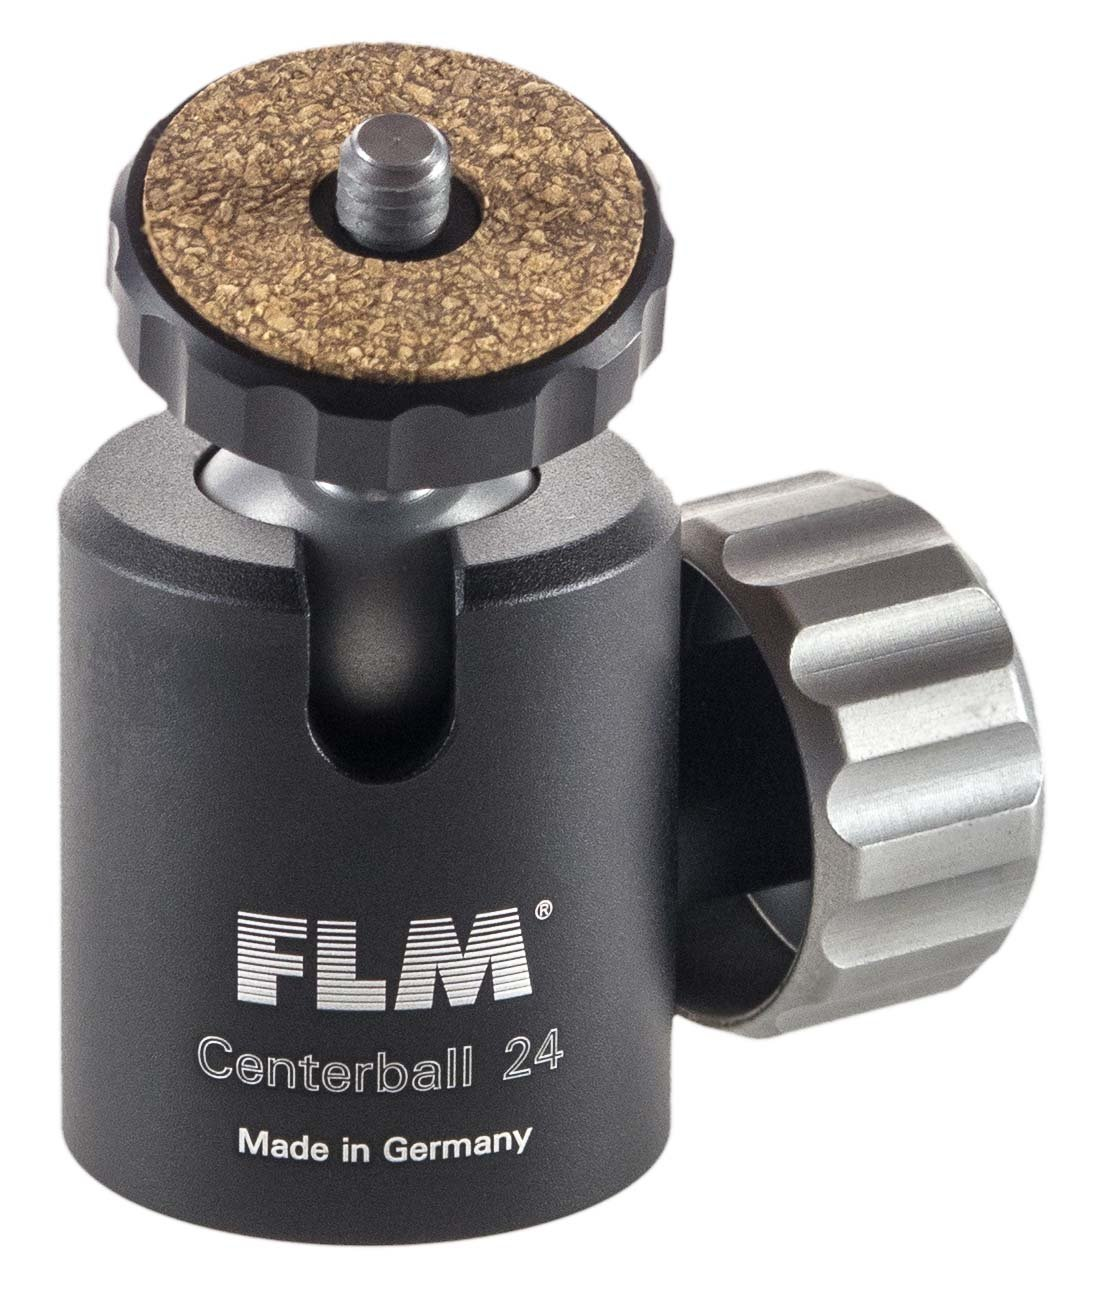 FLM CB-24E 24mm Centerball Head without Friction, 22.04 lbs Load Capacity